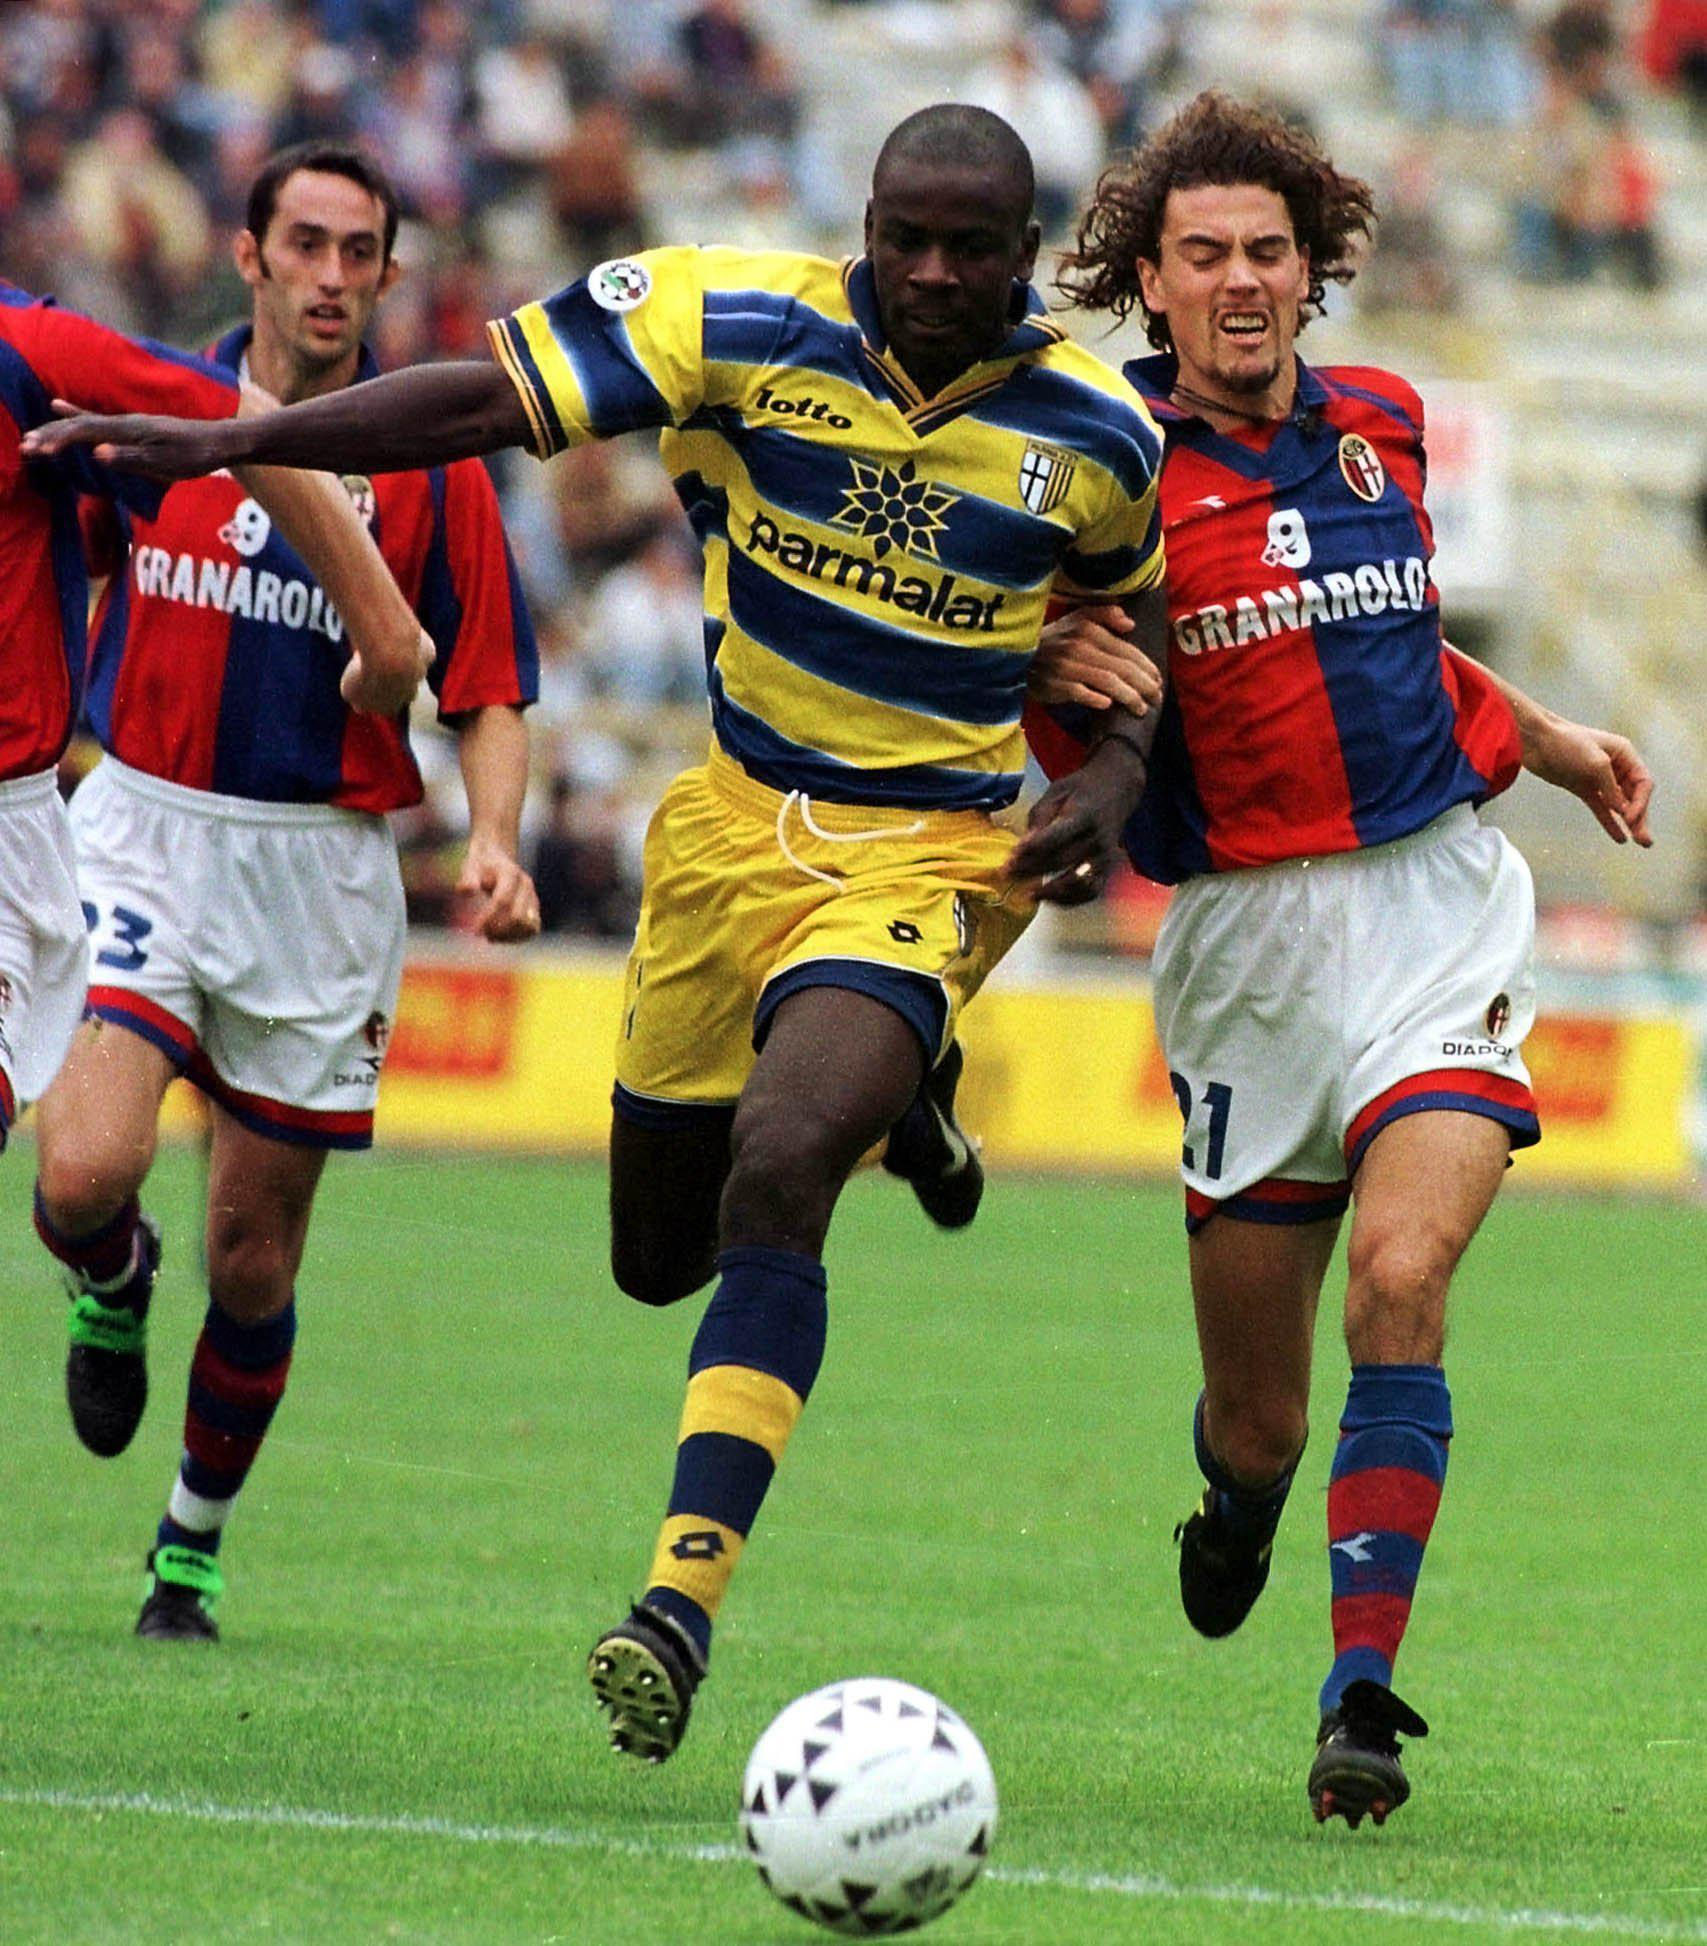 https://upload.wikimedia.org/wikipedia/it/2/20/Serie_A_1998-99_-_Bologna_vs_Parma_-_Lilian_Thuram_e_Jonatan_Binotto.jpg